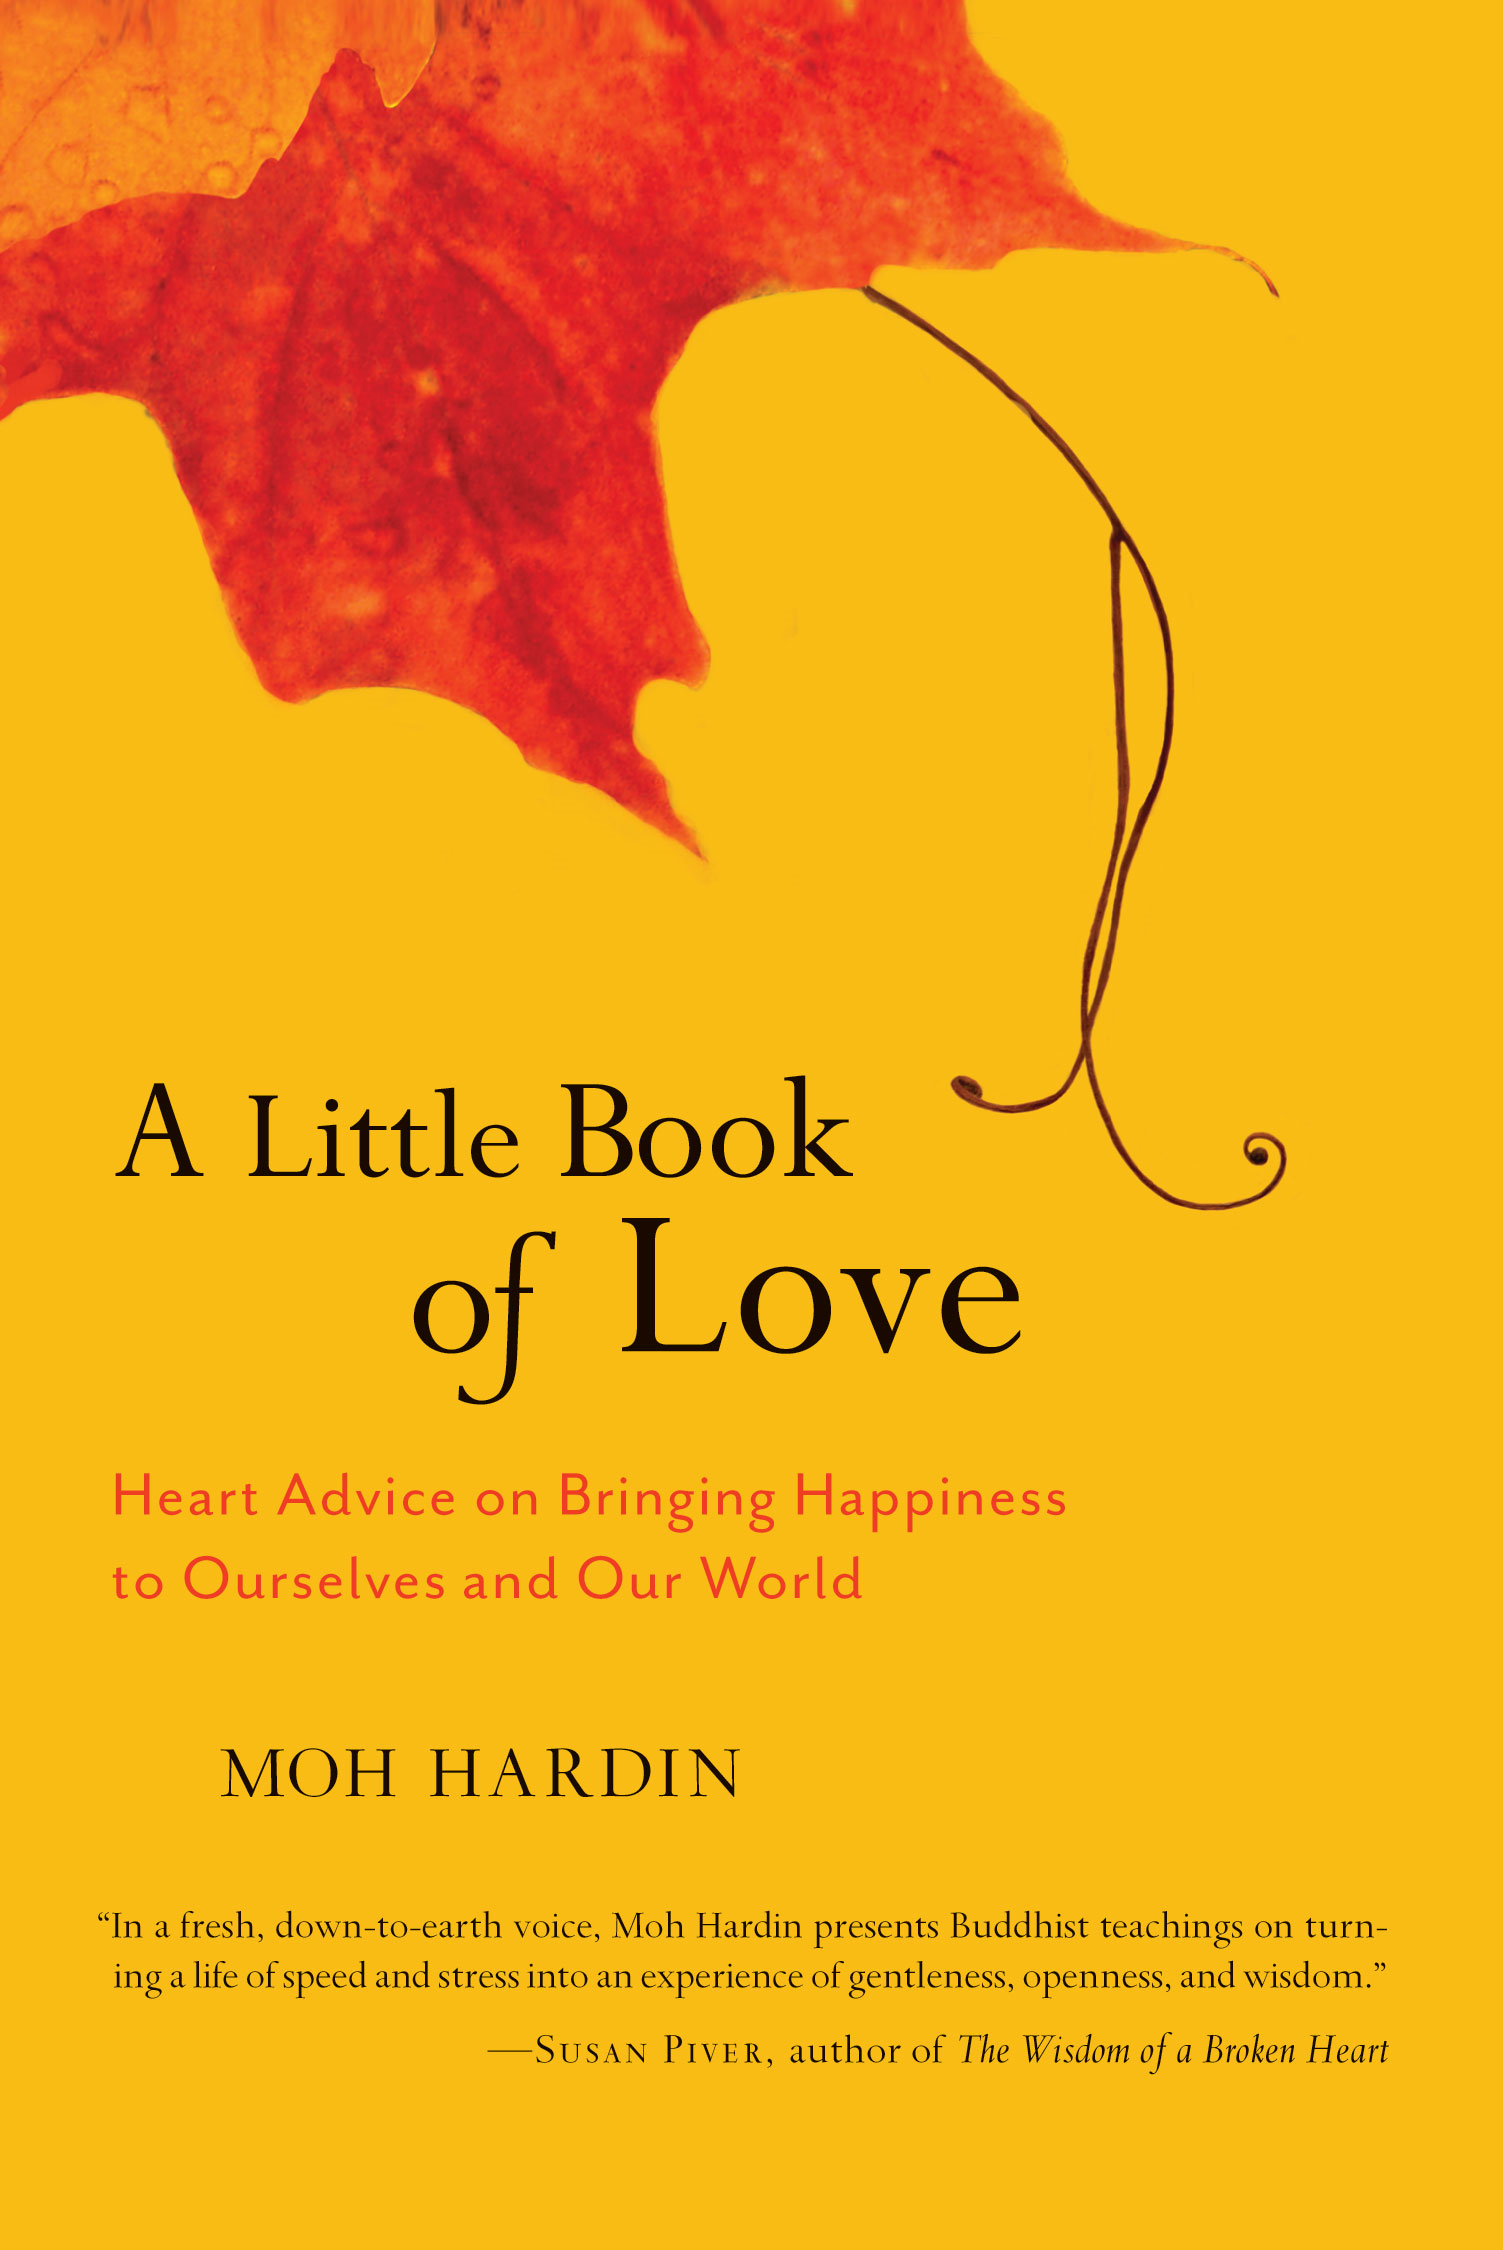 A Little Book of Love: Heart Advice on Bringing Happiness to Ourselves and Our World By: Moh Hardin